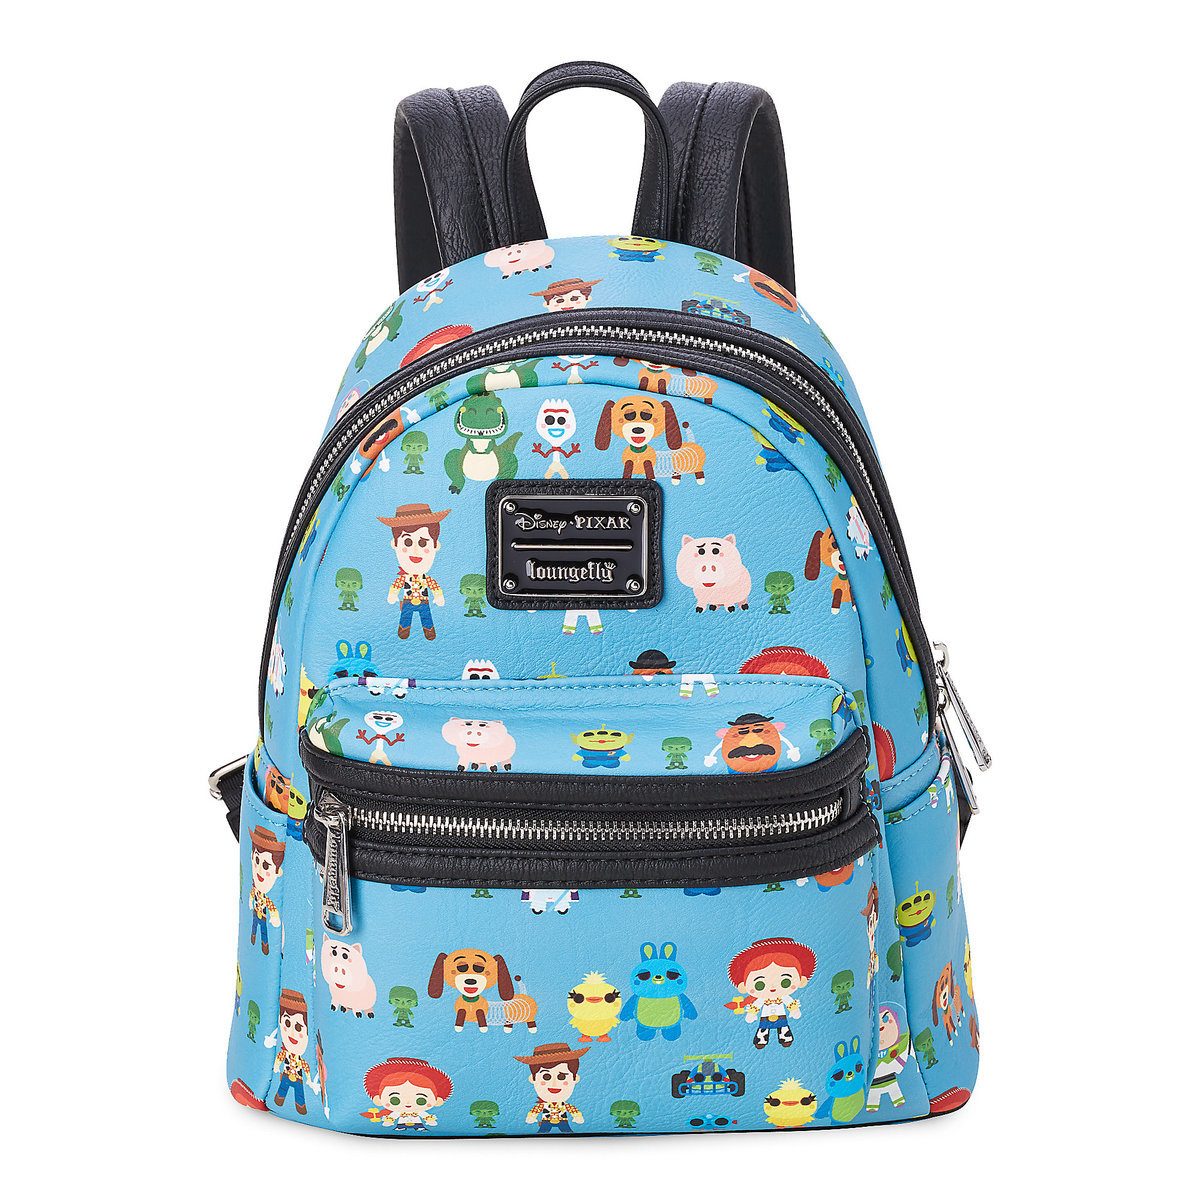 edffc135829 Product Image of Toy Story 4 Mini Backpack by Loungefly   1